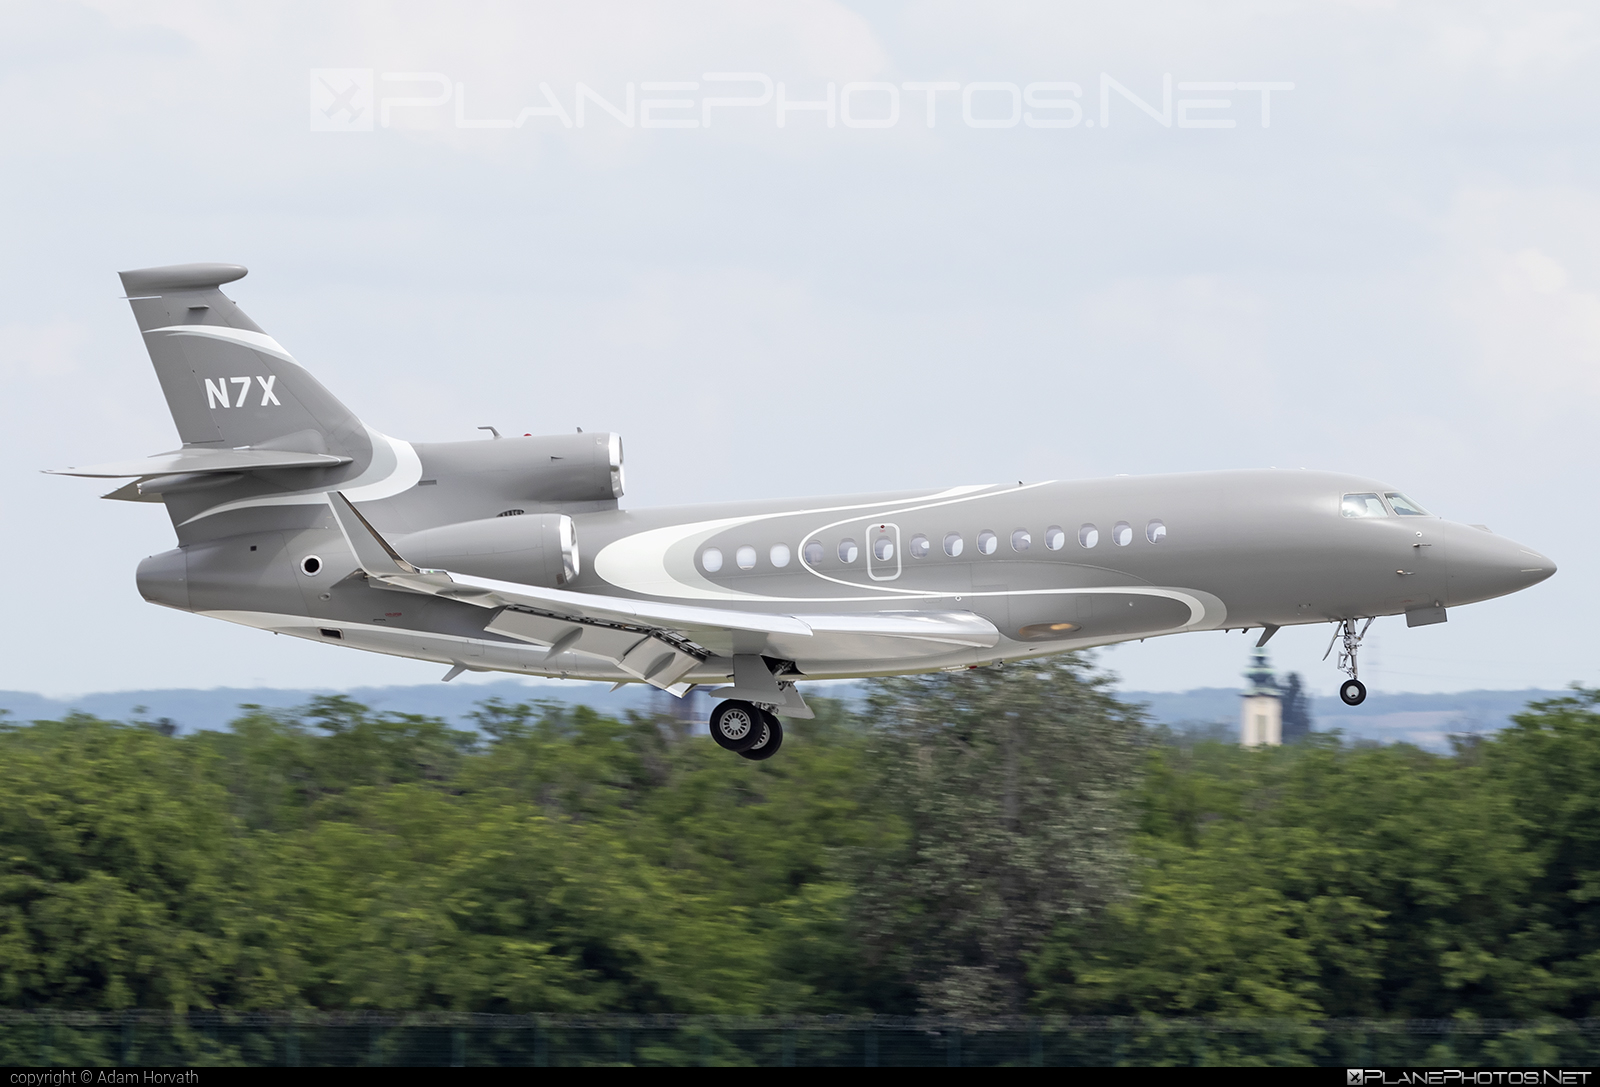 Dassault Falcon 7X - N7X operated by Private operator #dassault #dassaultfalcon #dassaultfalcon7x #falcon7x